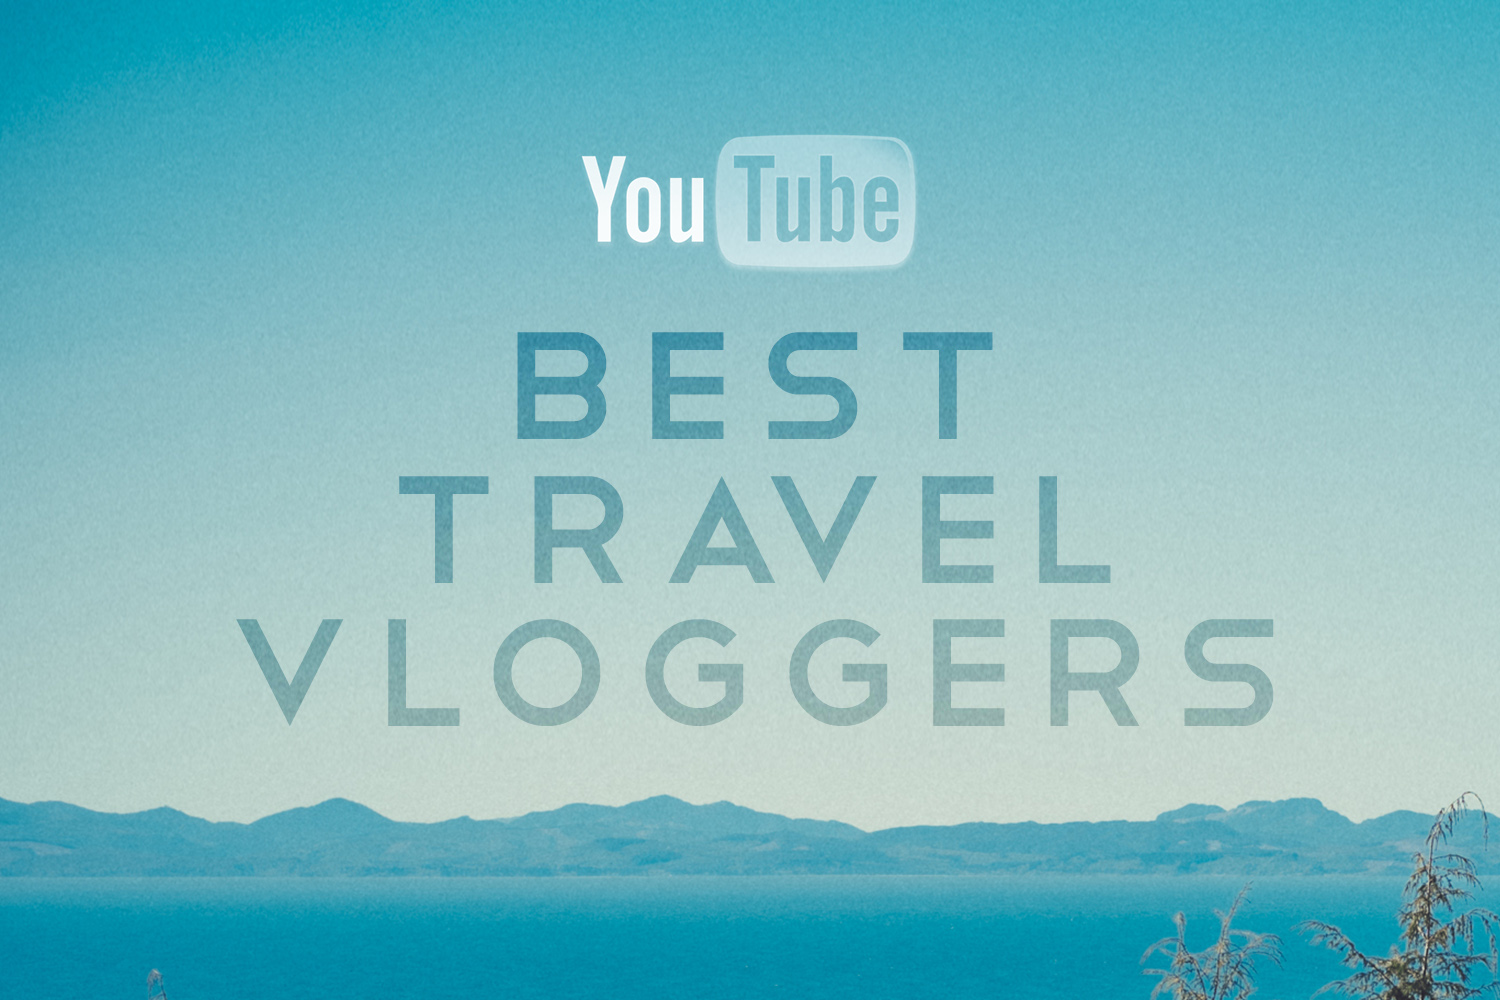 THE BEST TRAVEL VLOGGERS ON YOUTUBE